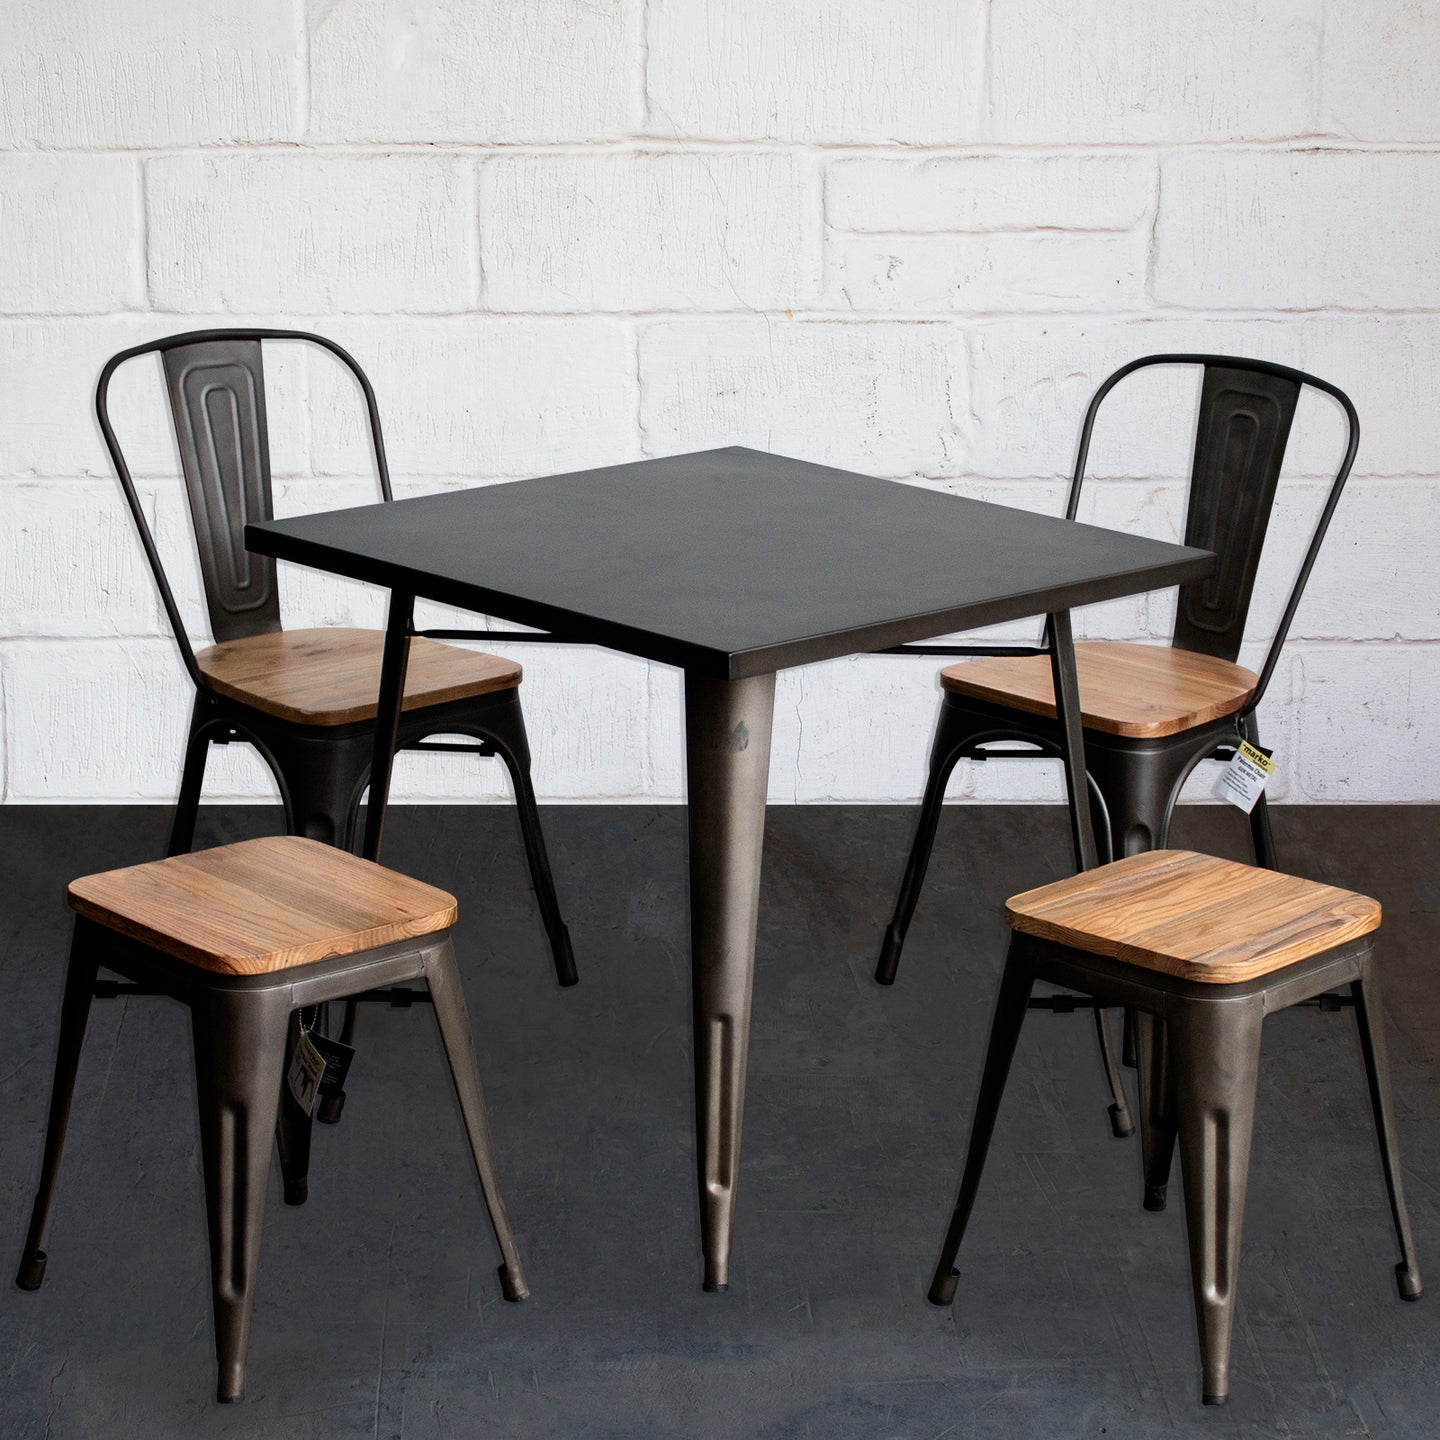 5PC Belvedere Table Palermo Chair & Rho Stool Set - Gun Metal Grey